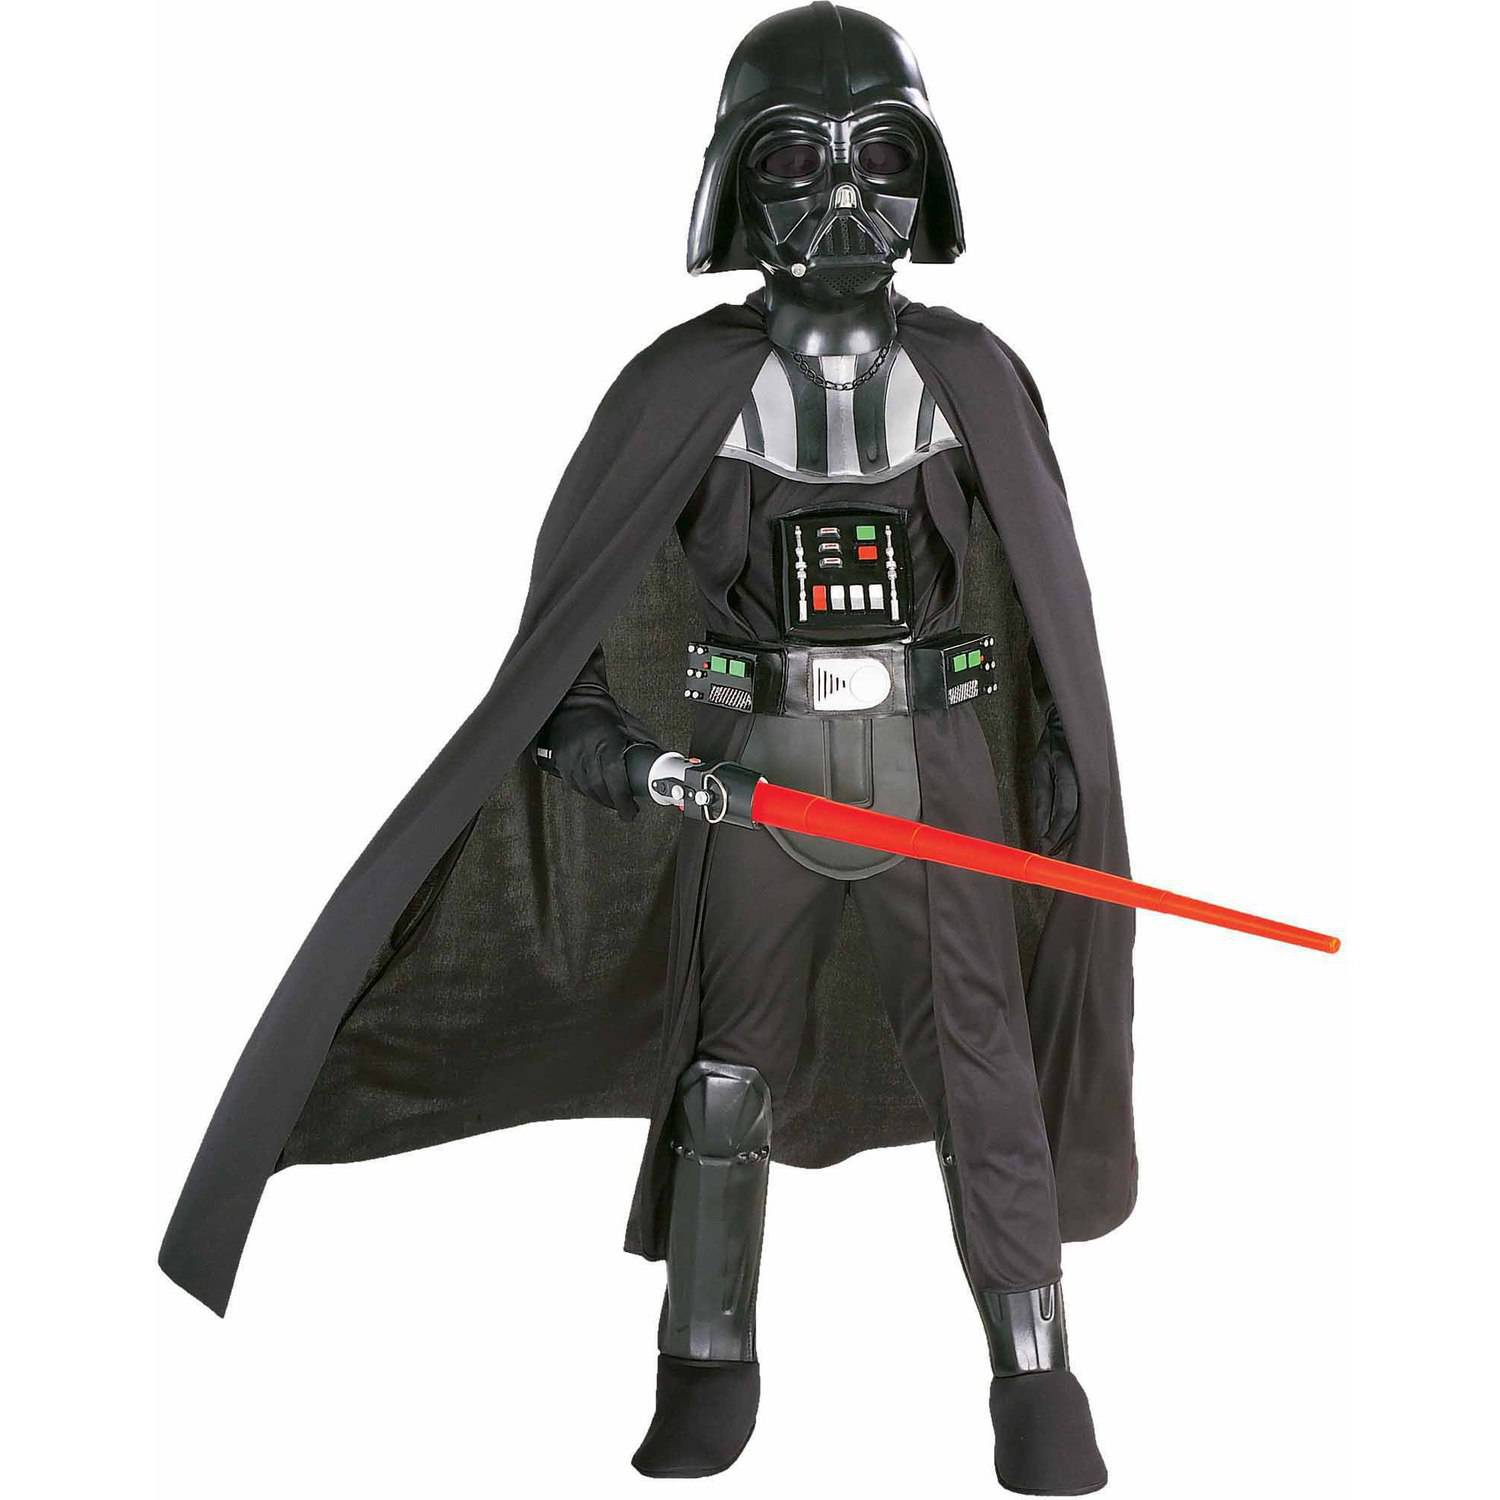 Rubies Darth Vader Costume